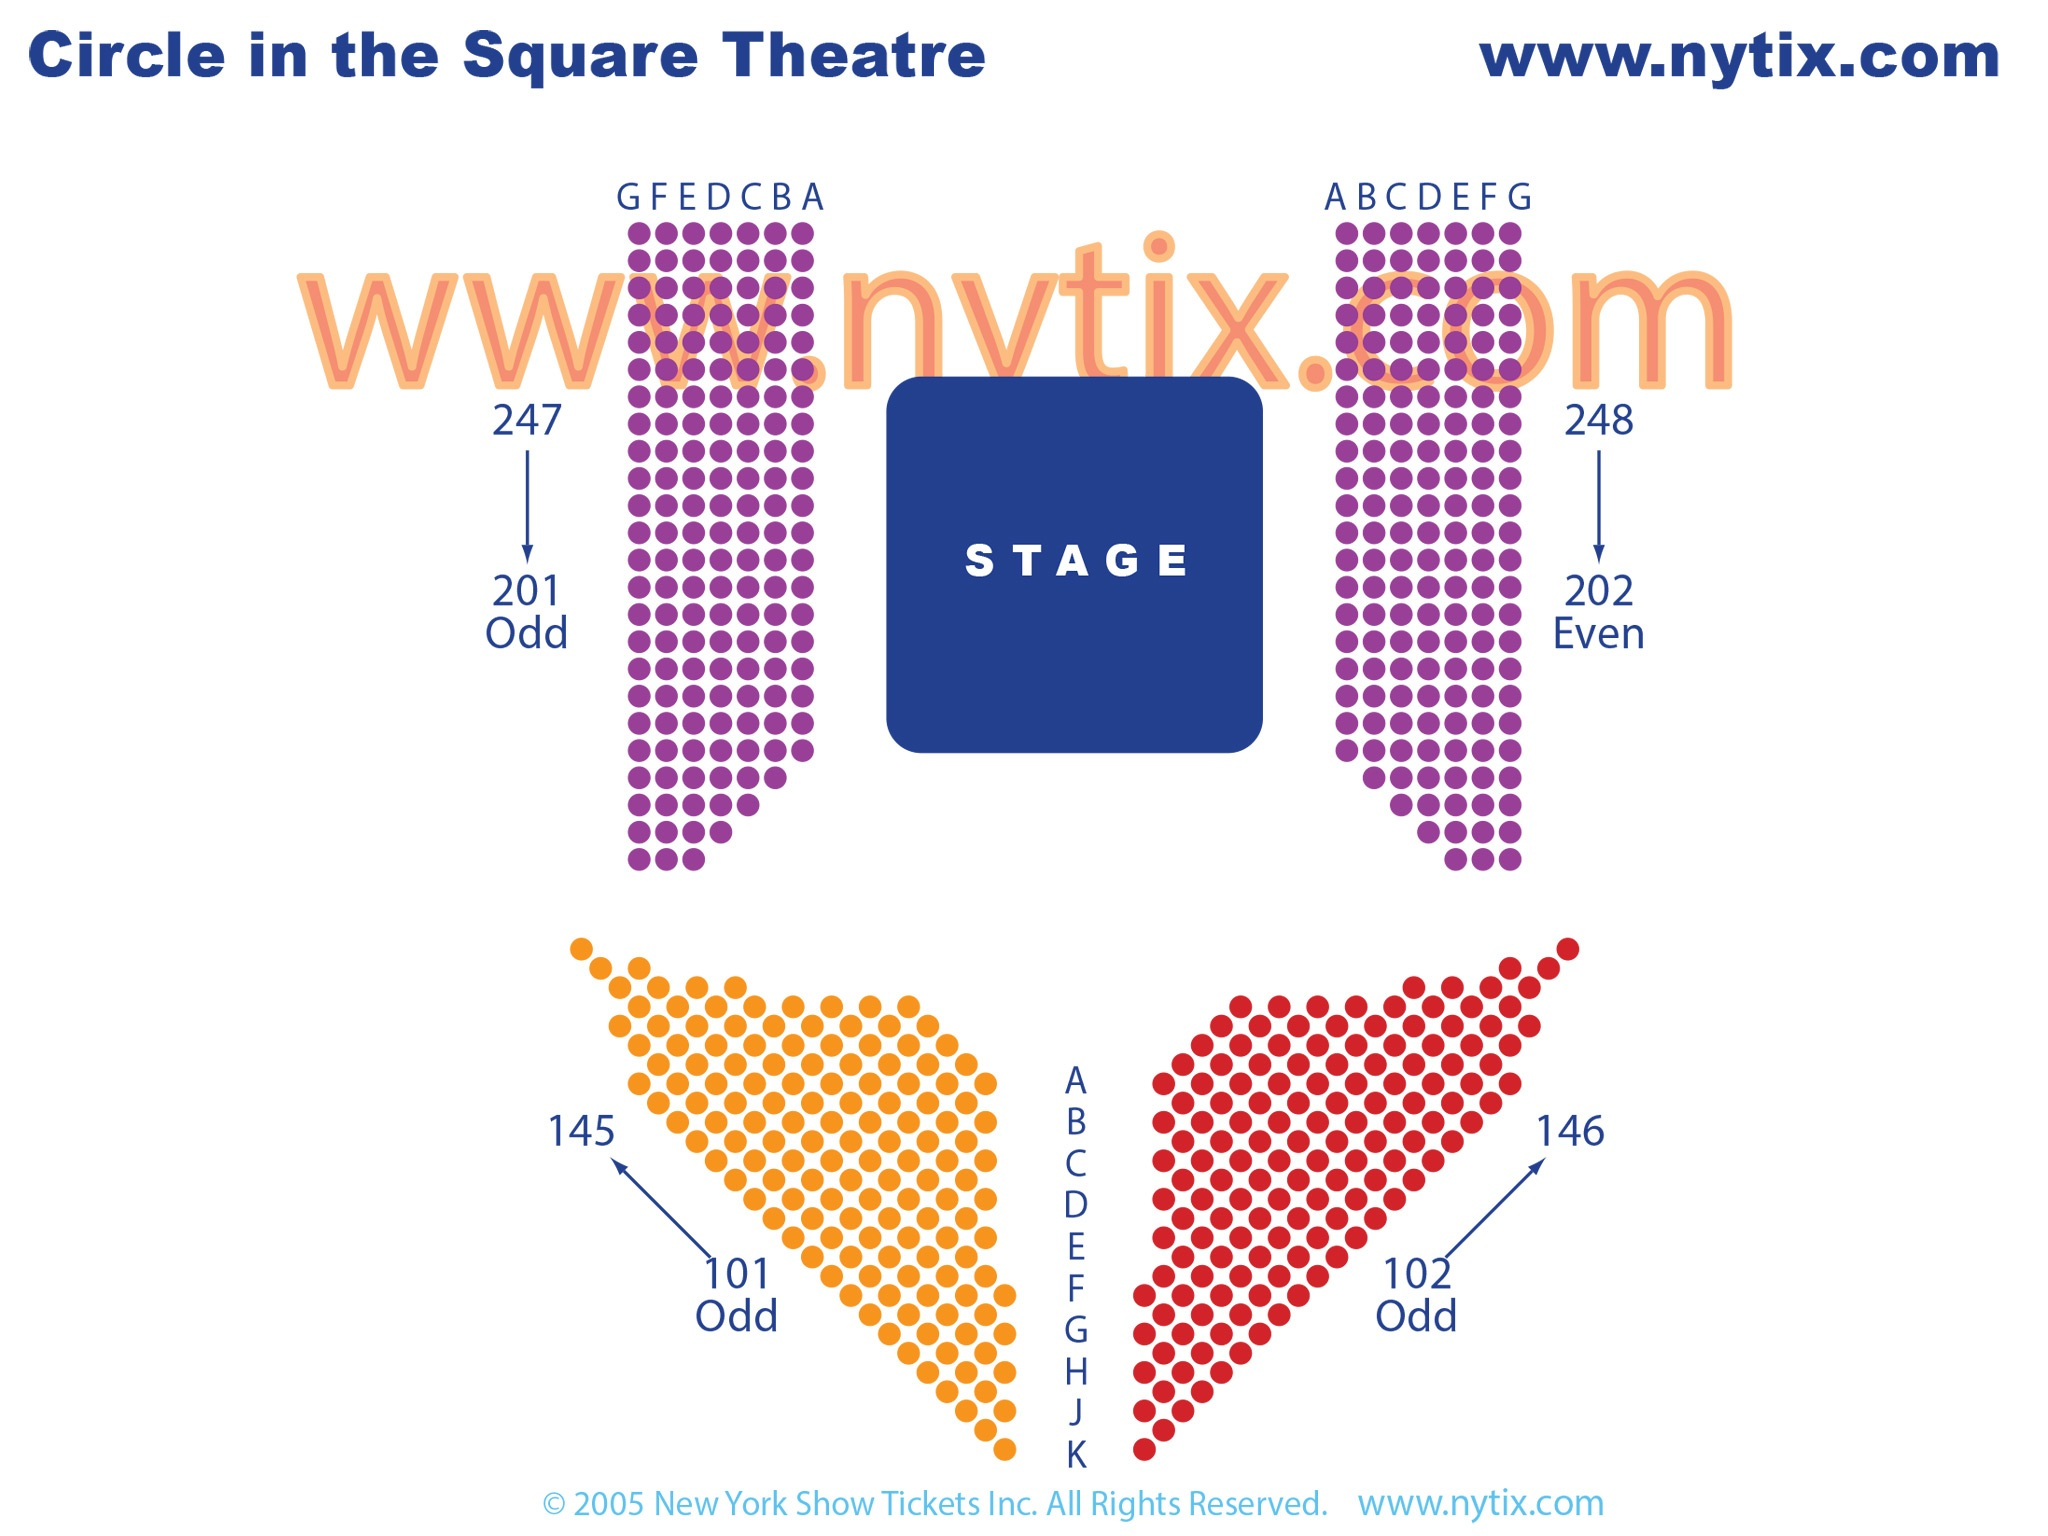 Circle In The Square Theatre Seating Chart